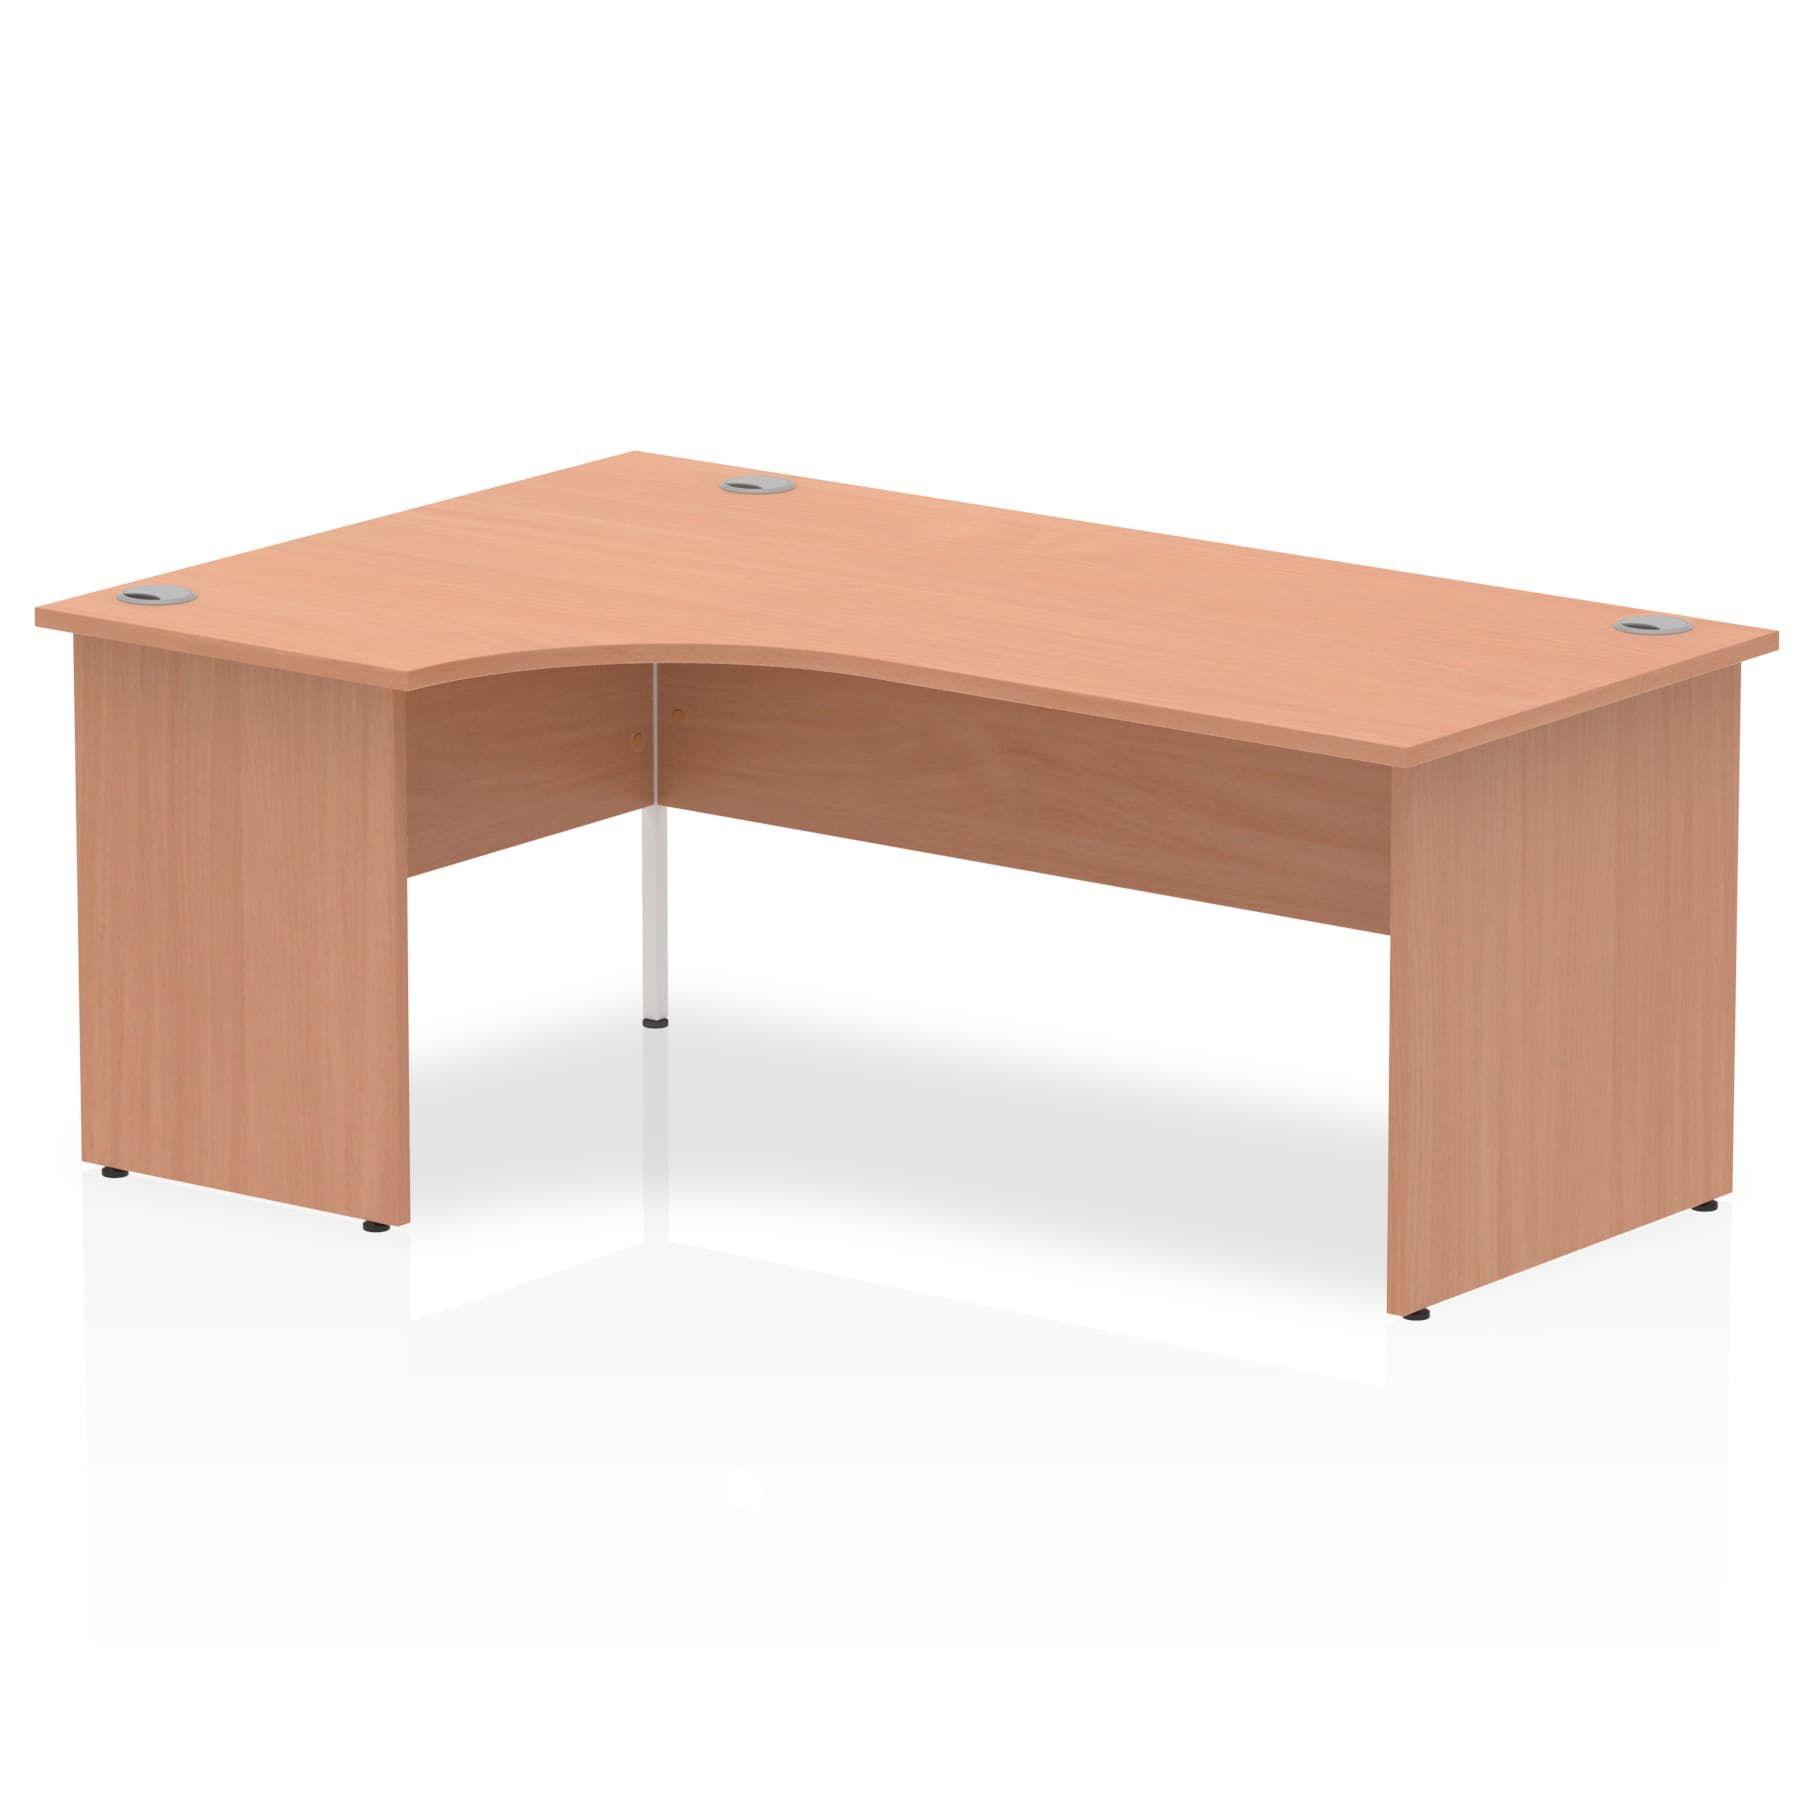 Impulse 1800 Left Hand Crescent Desk with Panel Leg